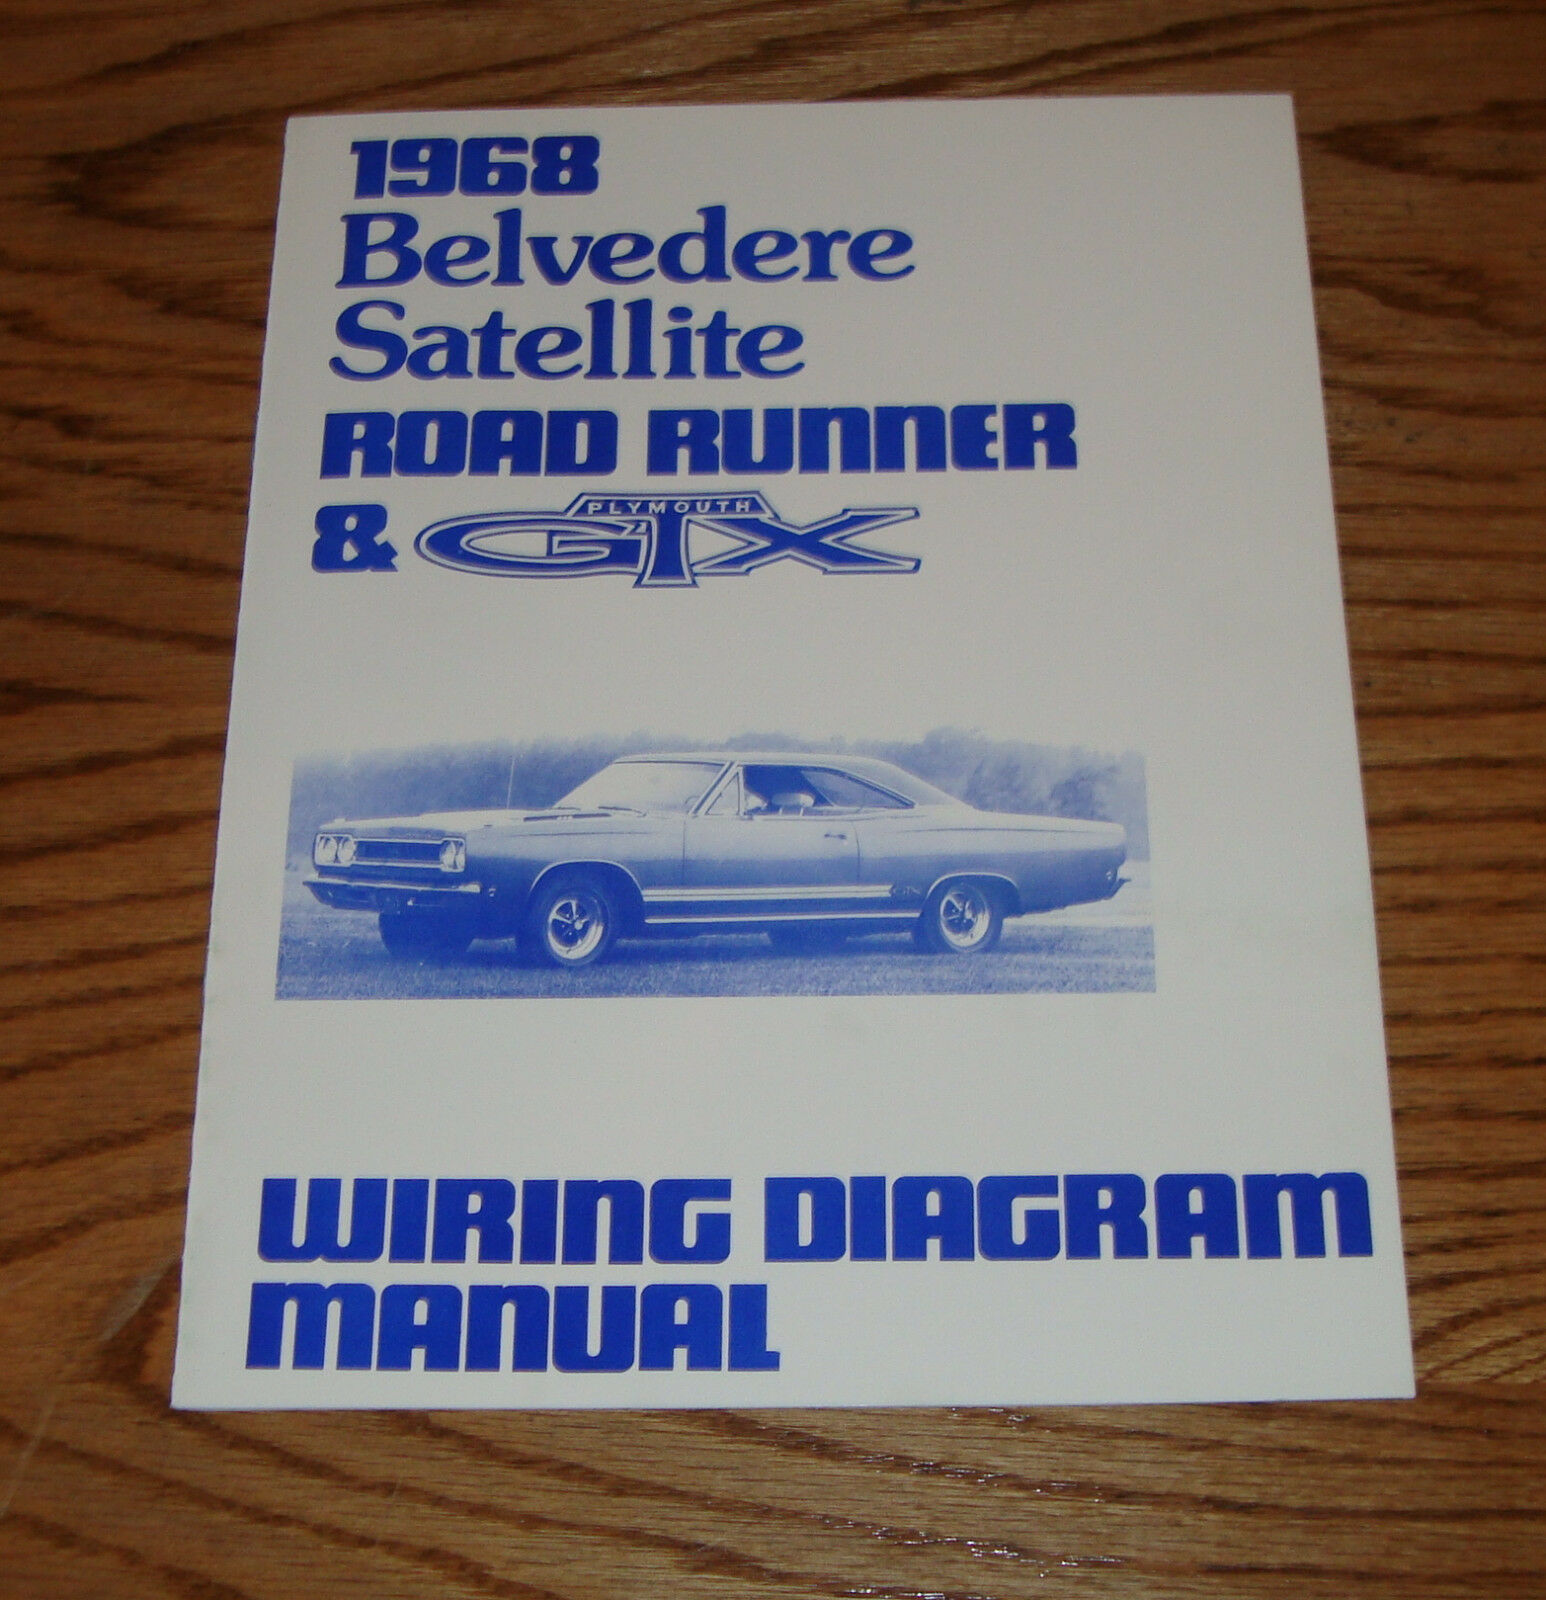 1968 Gtx Wiring Diagram Schematics Diagrams Chevy Truck Plymouth Belvedere Satellite Road Runner Rh Picclick Com